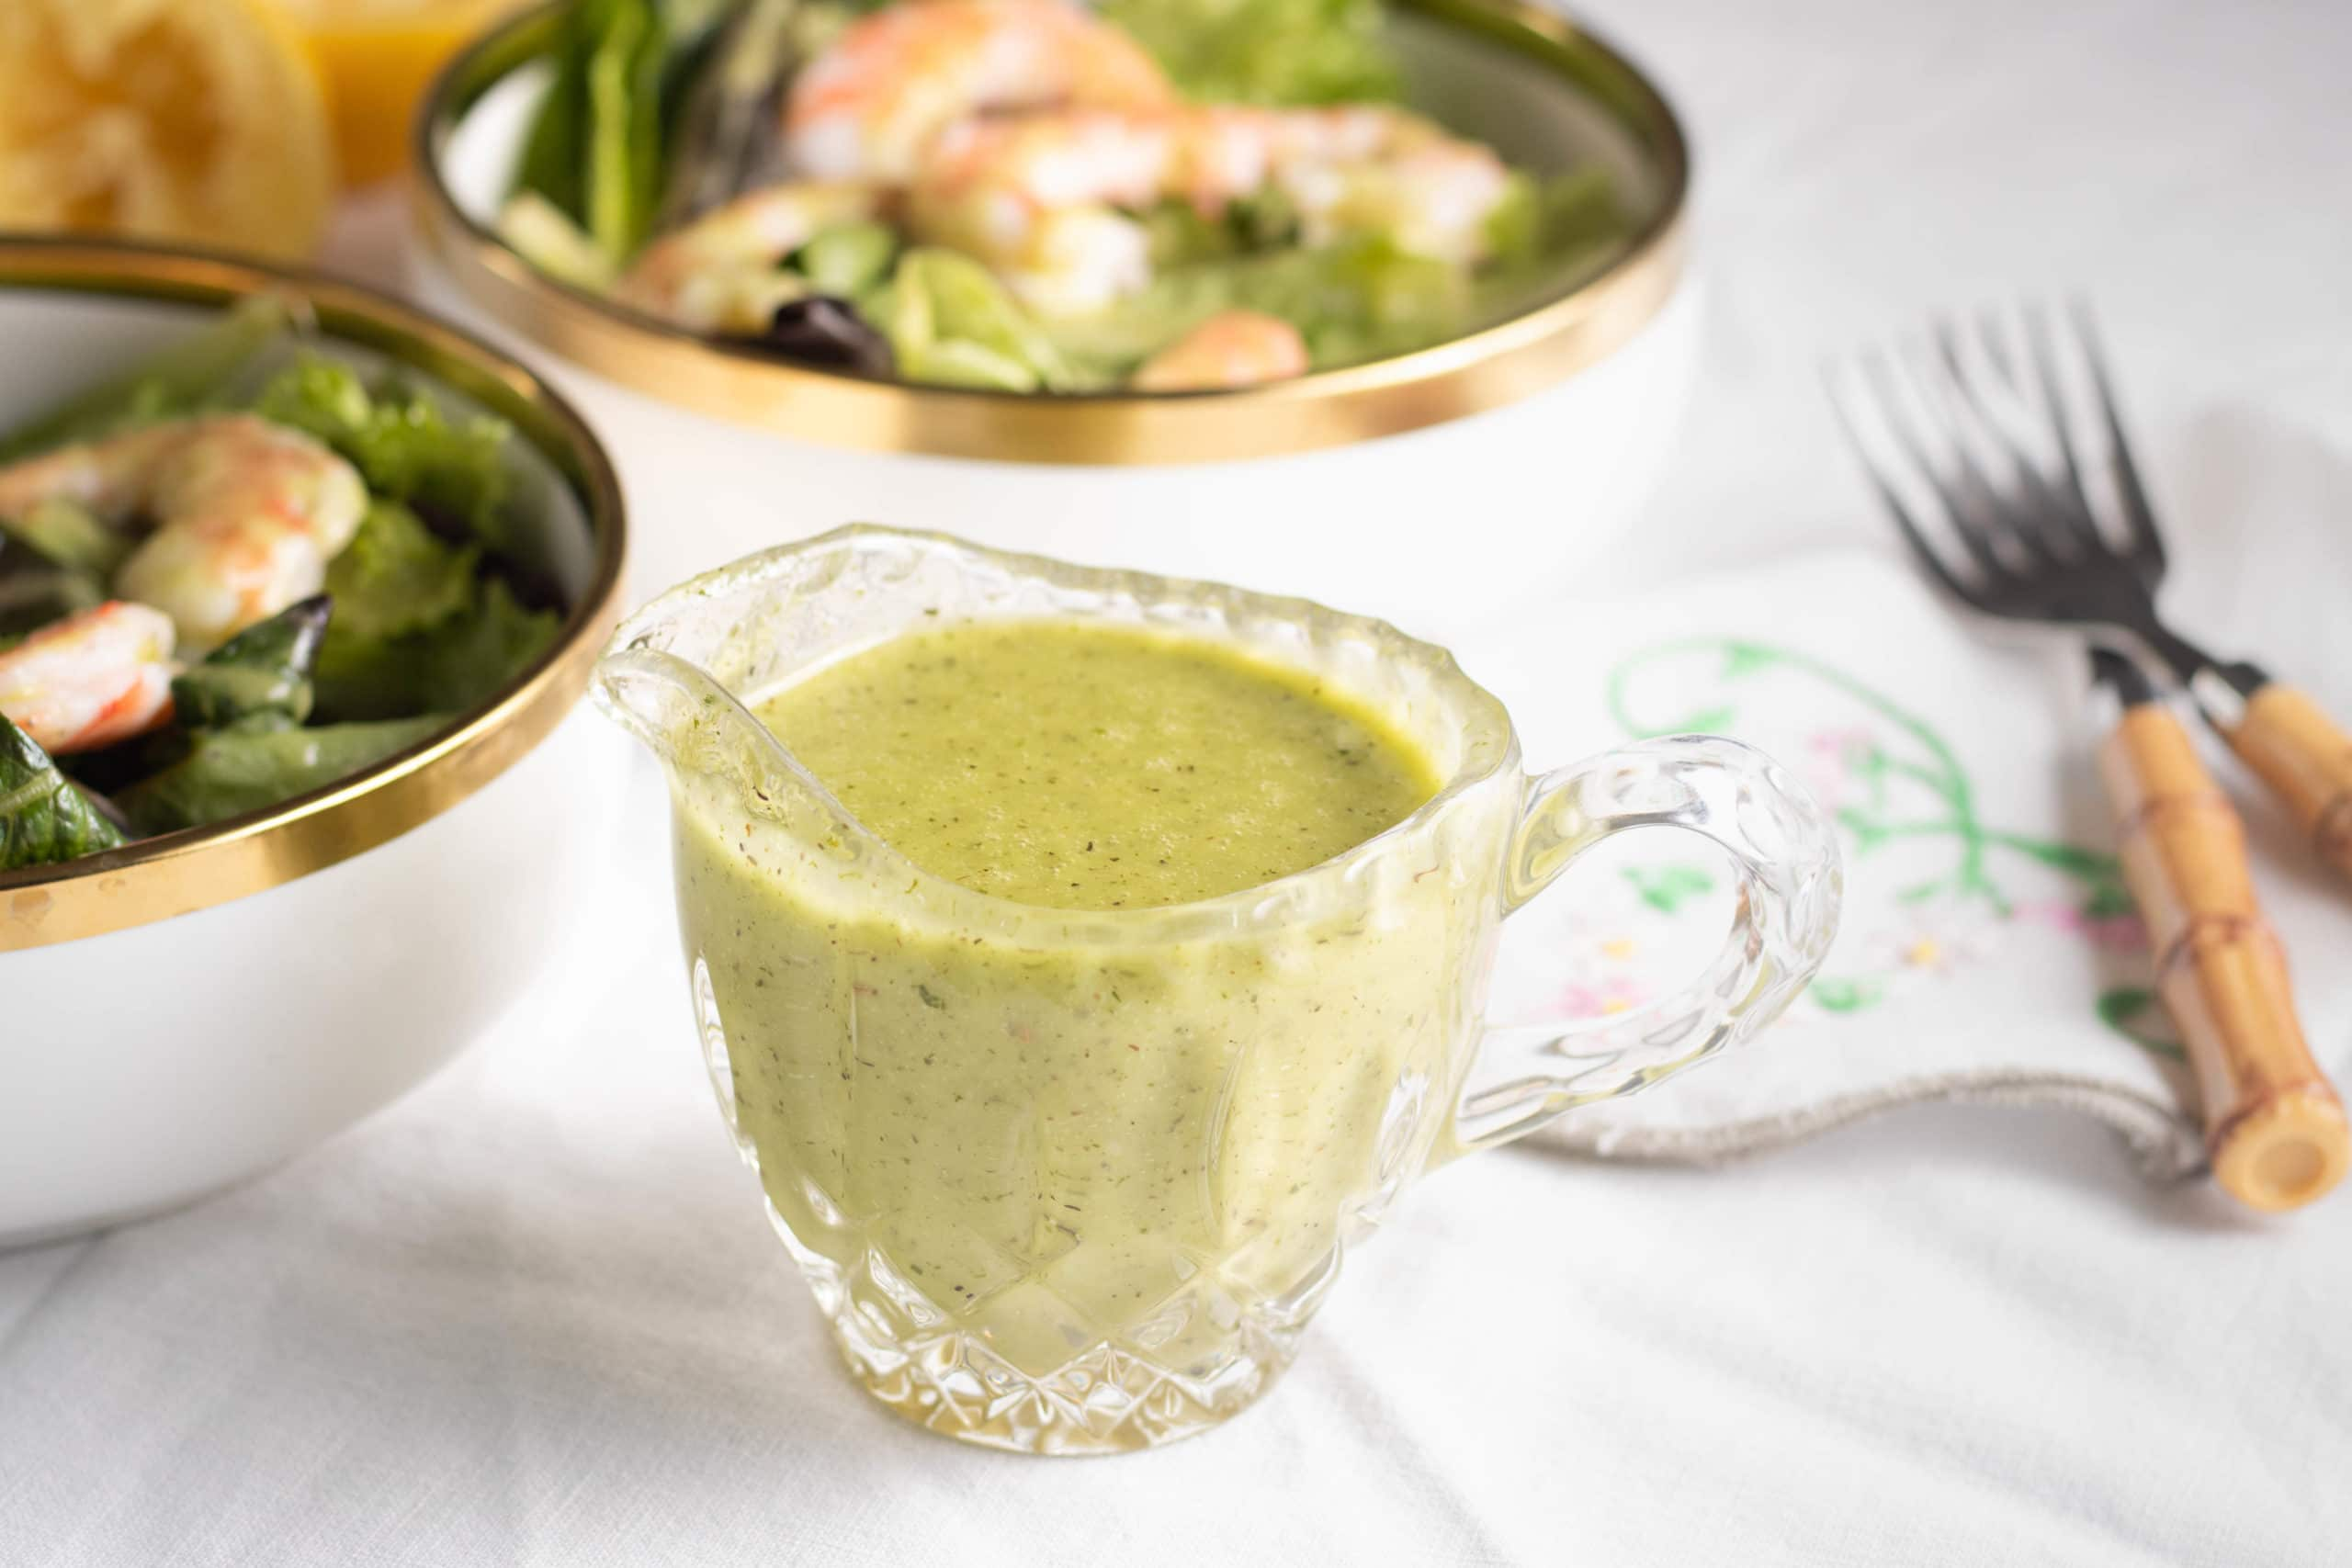 Low Carb Salad Dressing with Garlic and Lemon